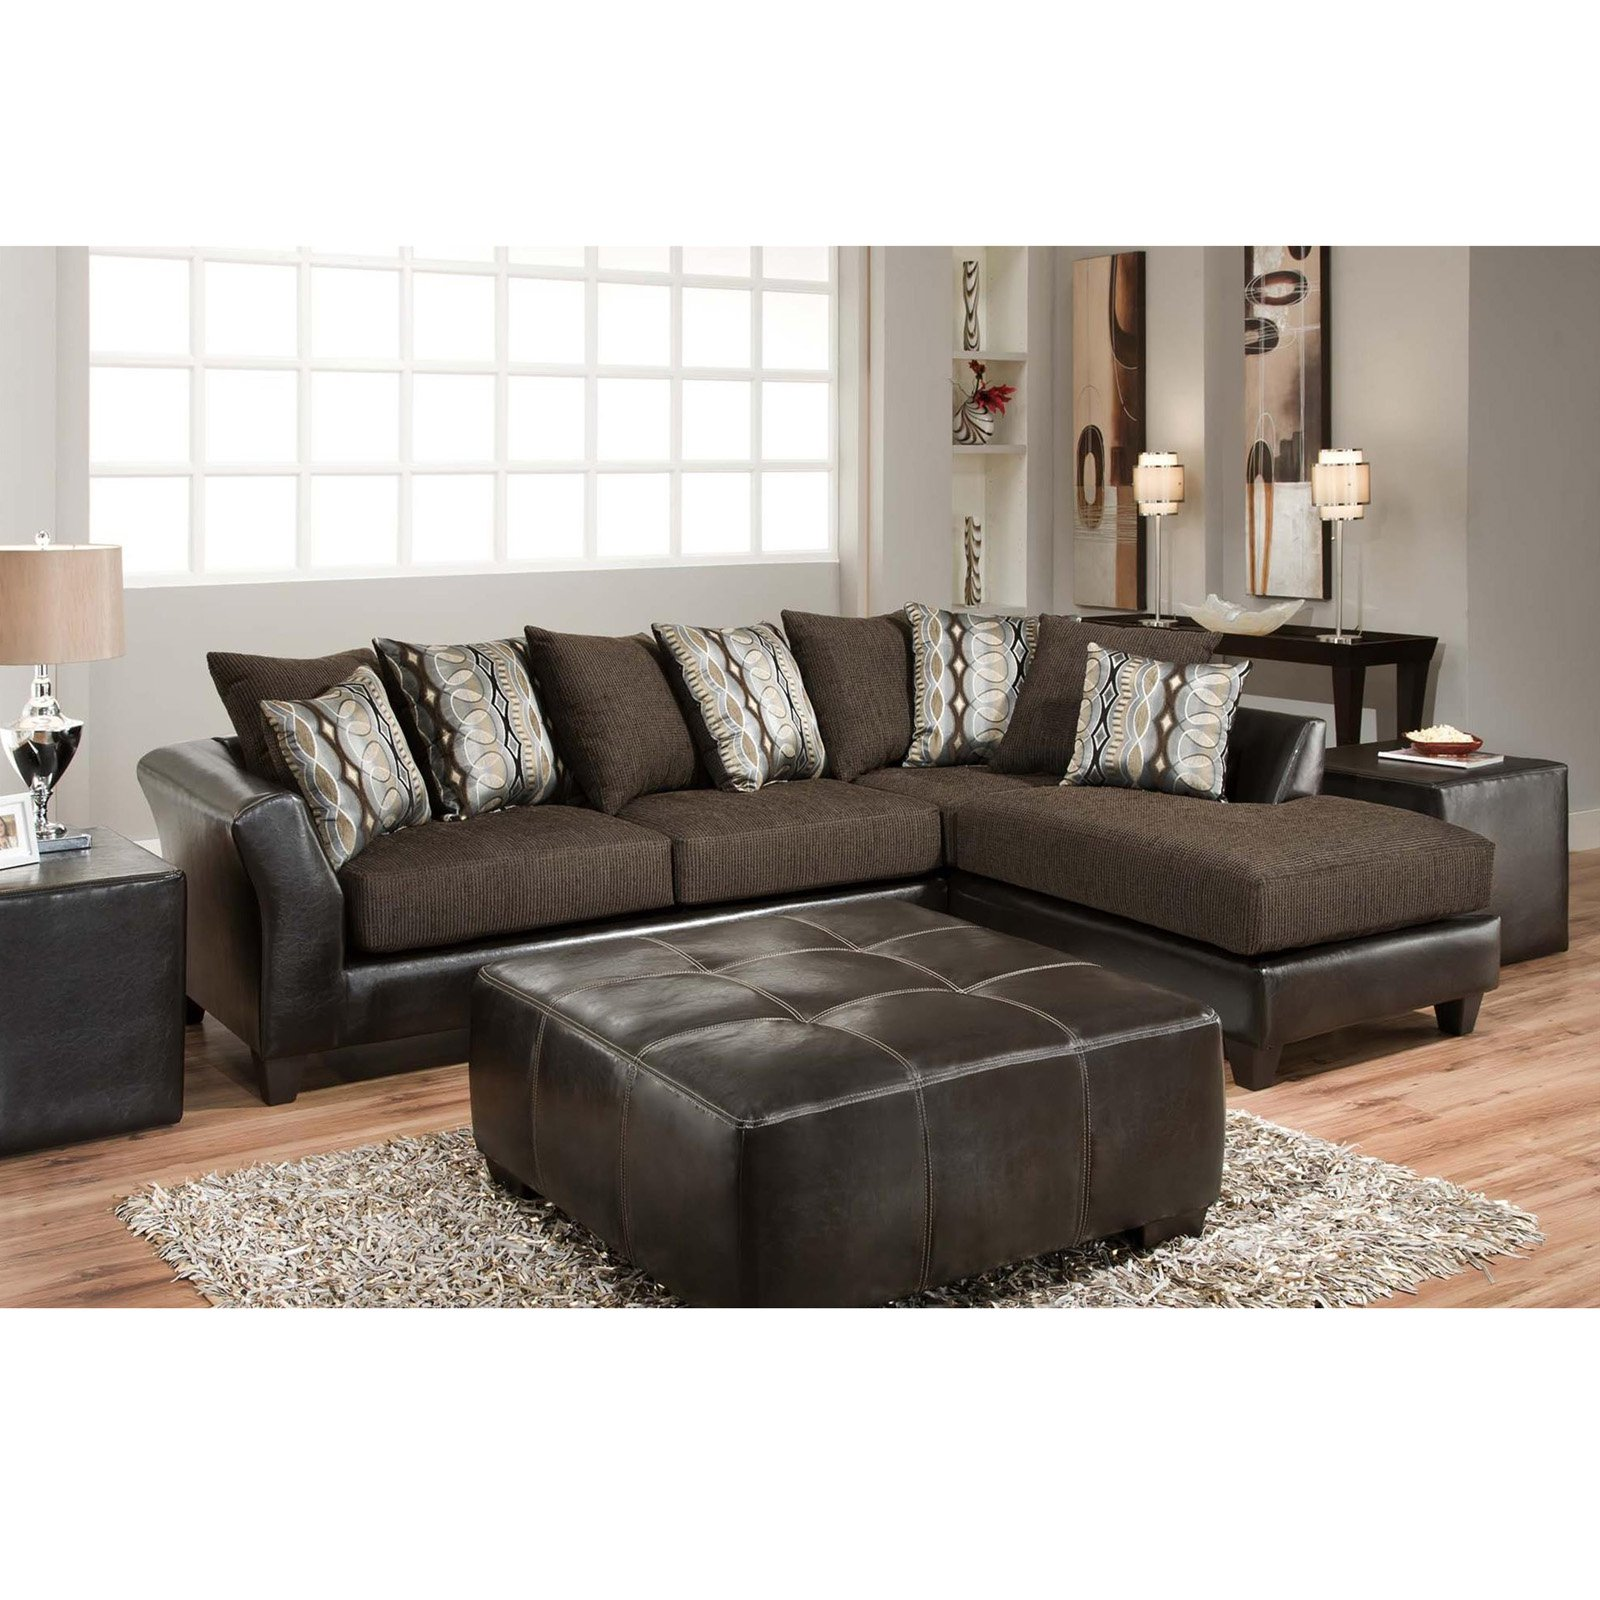 Flash Furniture Riverstone Rip Sable Chenille Sectional Sofa